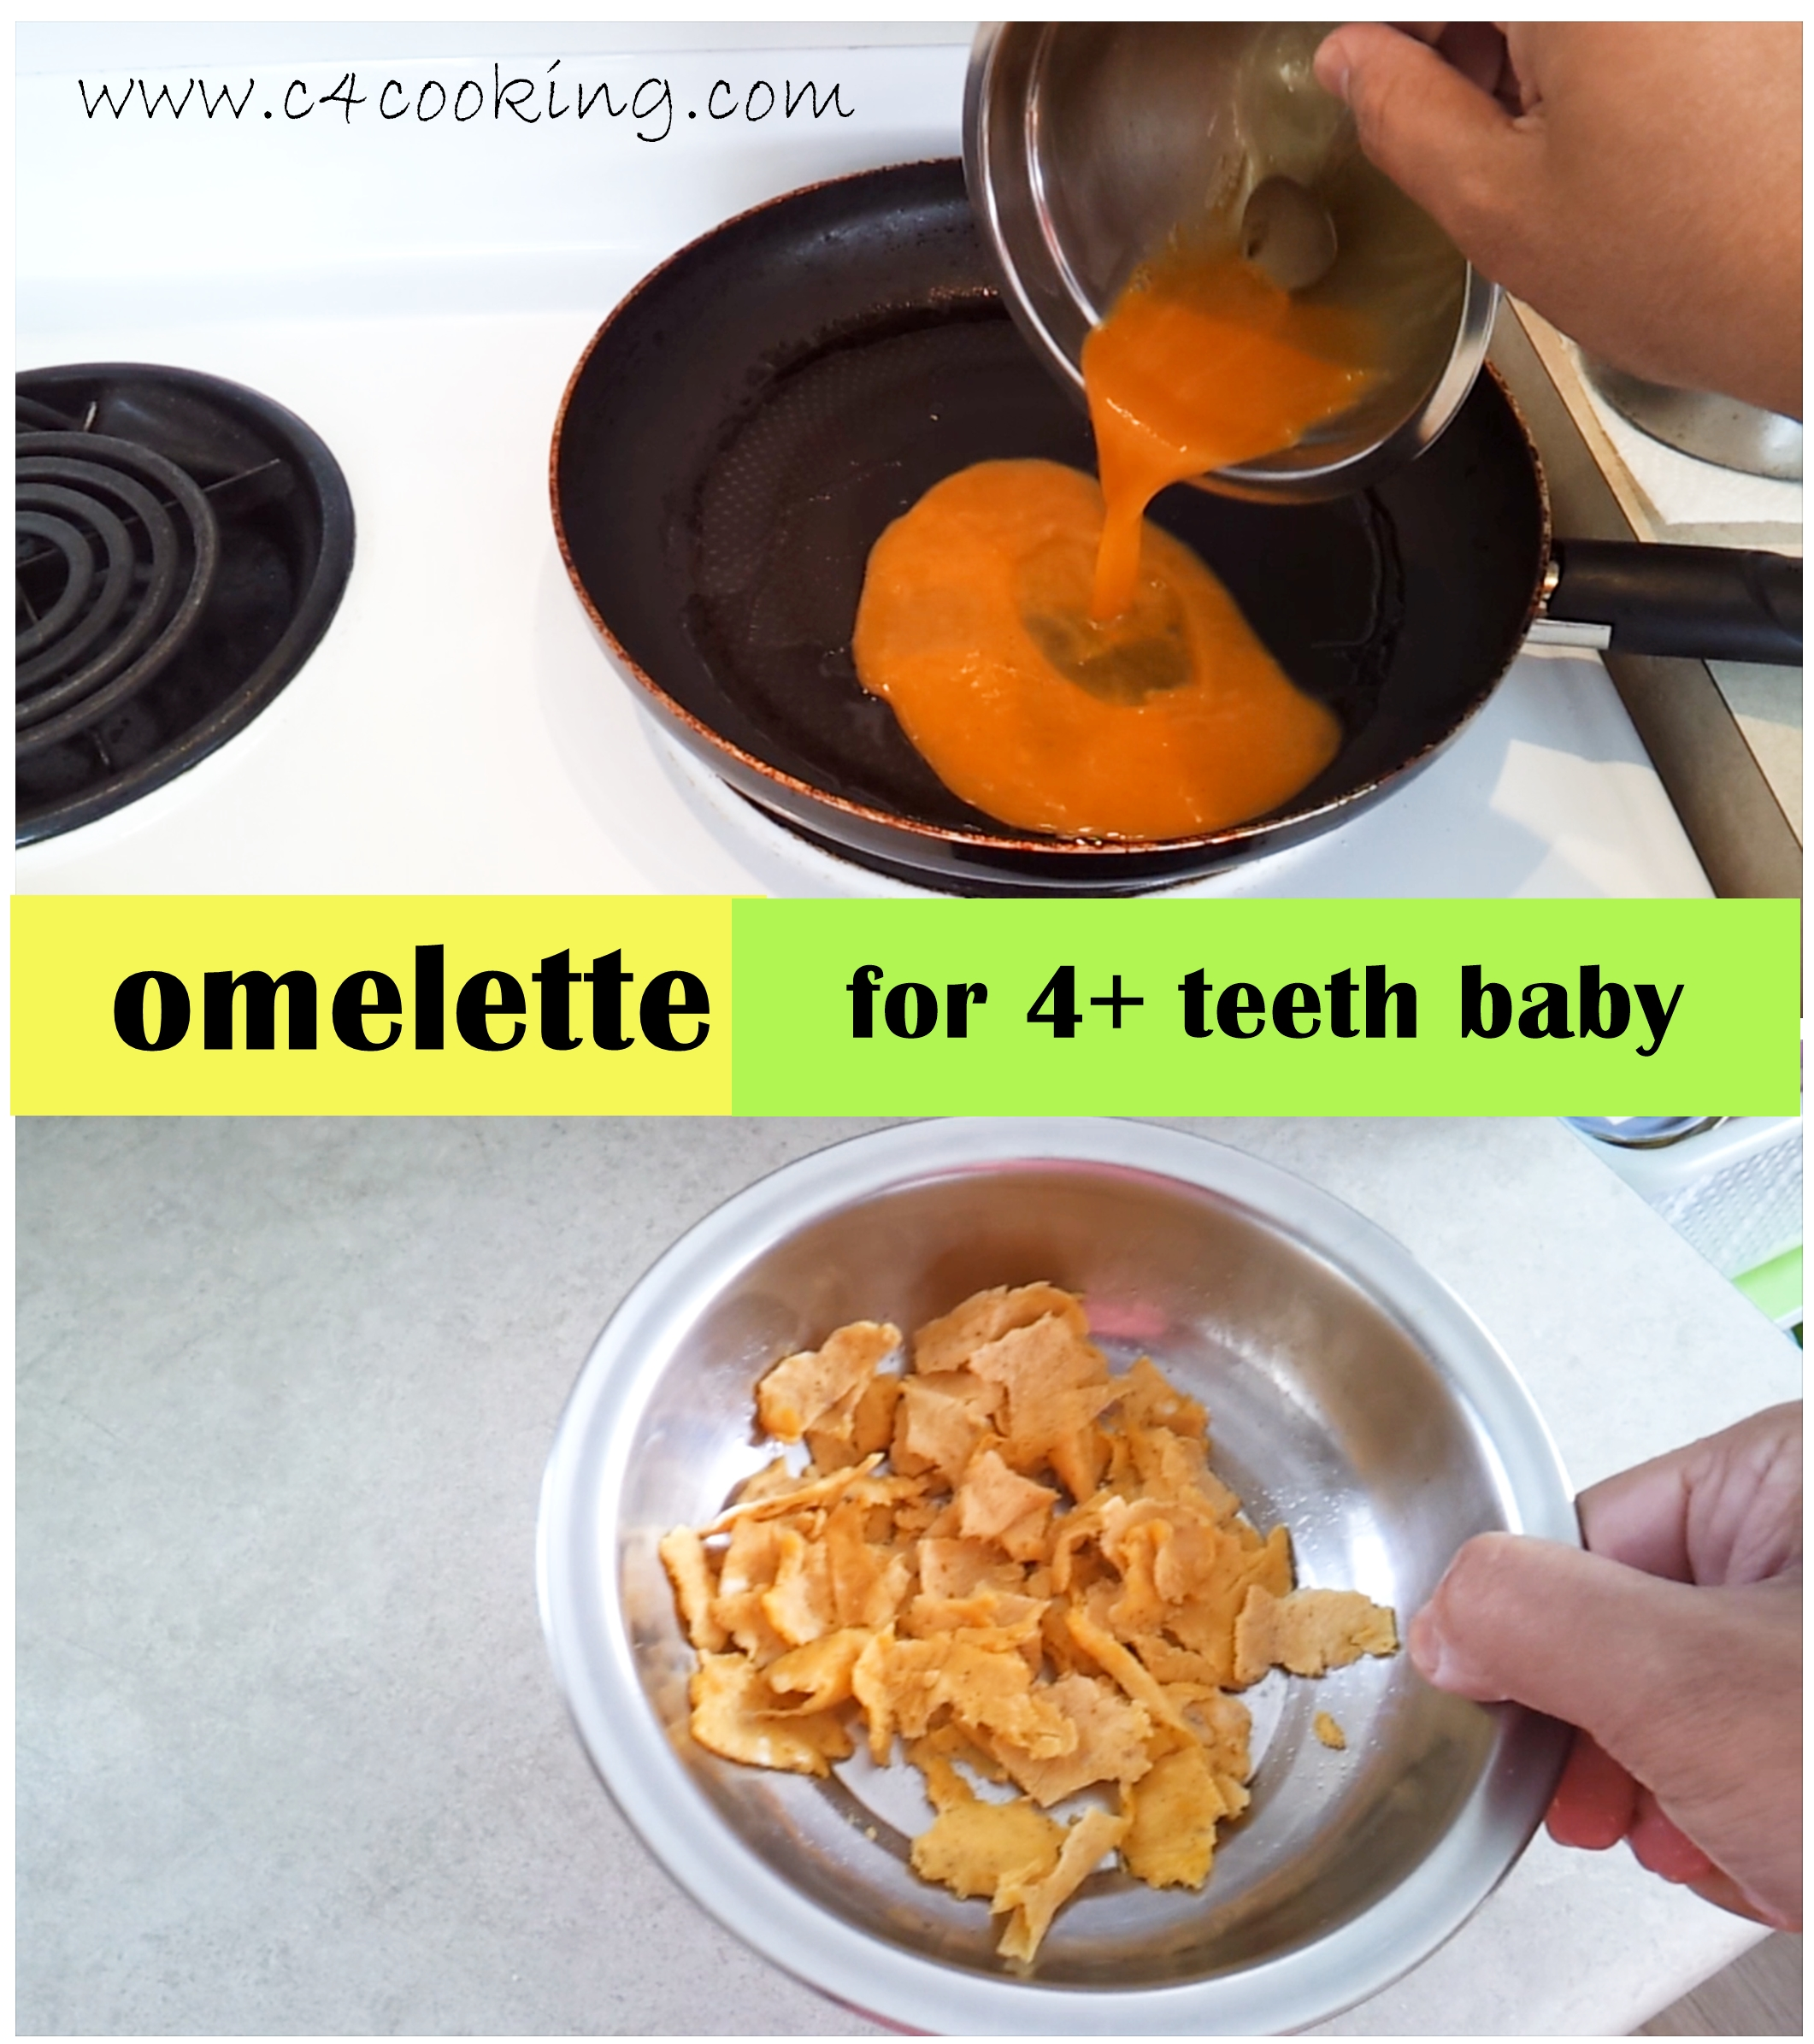 omelette recipe for baby, 4+ teeth baby recipe, how to eggs to babies, c4cooking egg recipes for baby